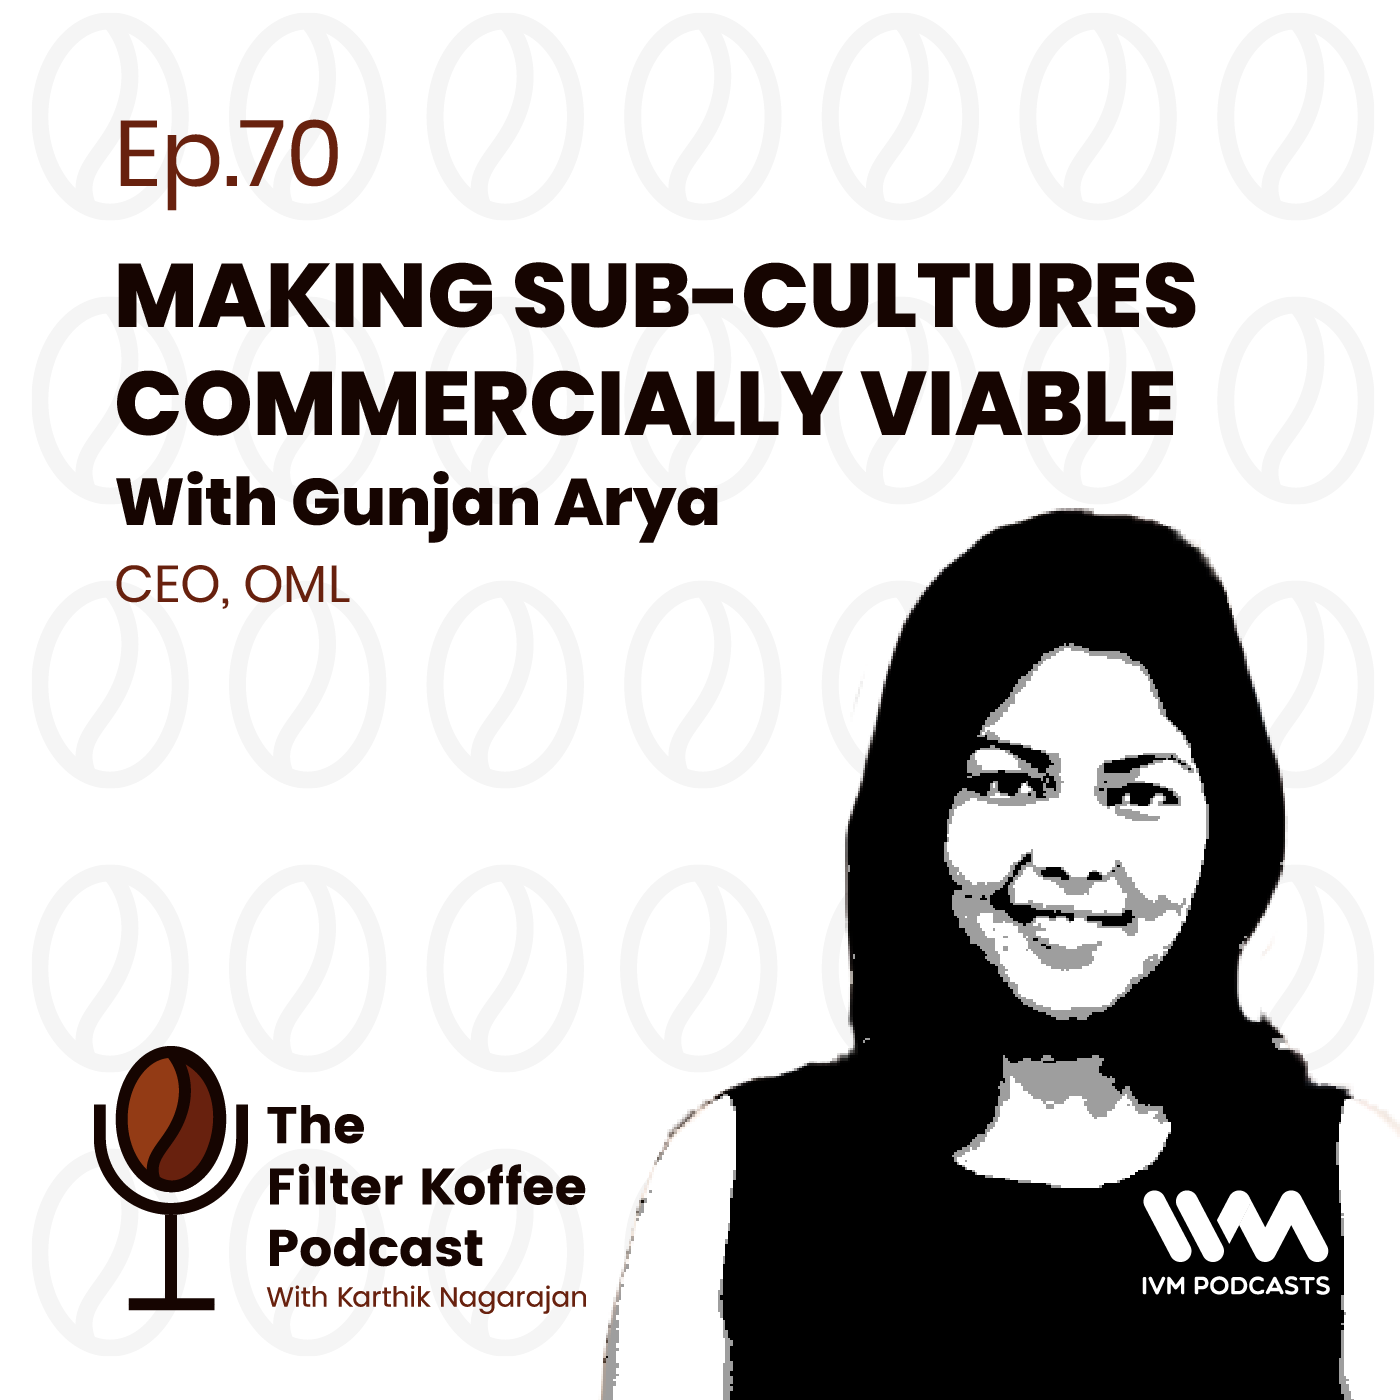 Ep. 70: Making Sub-Cultures Commercially Viable